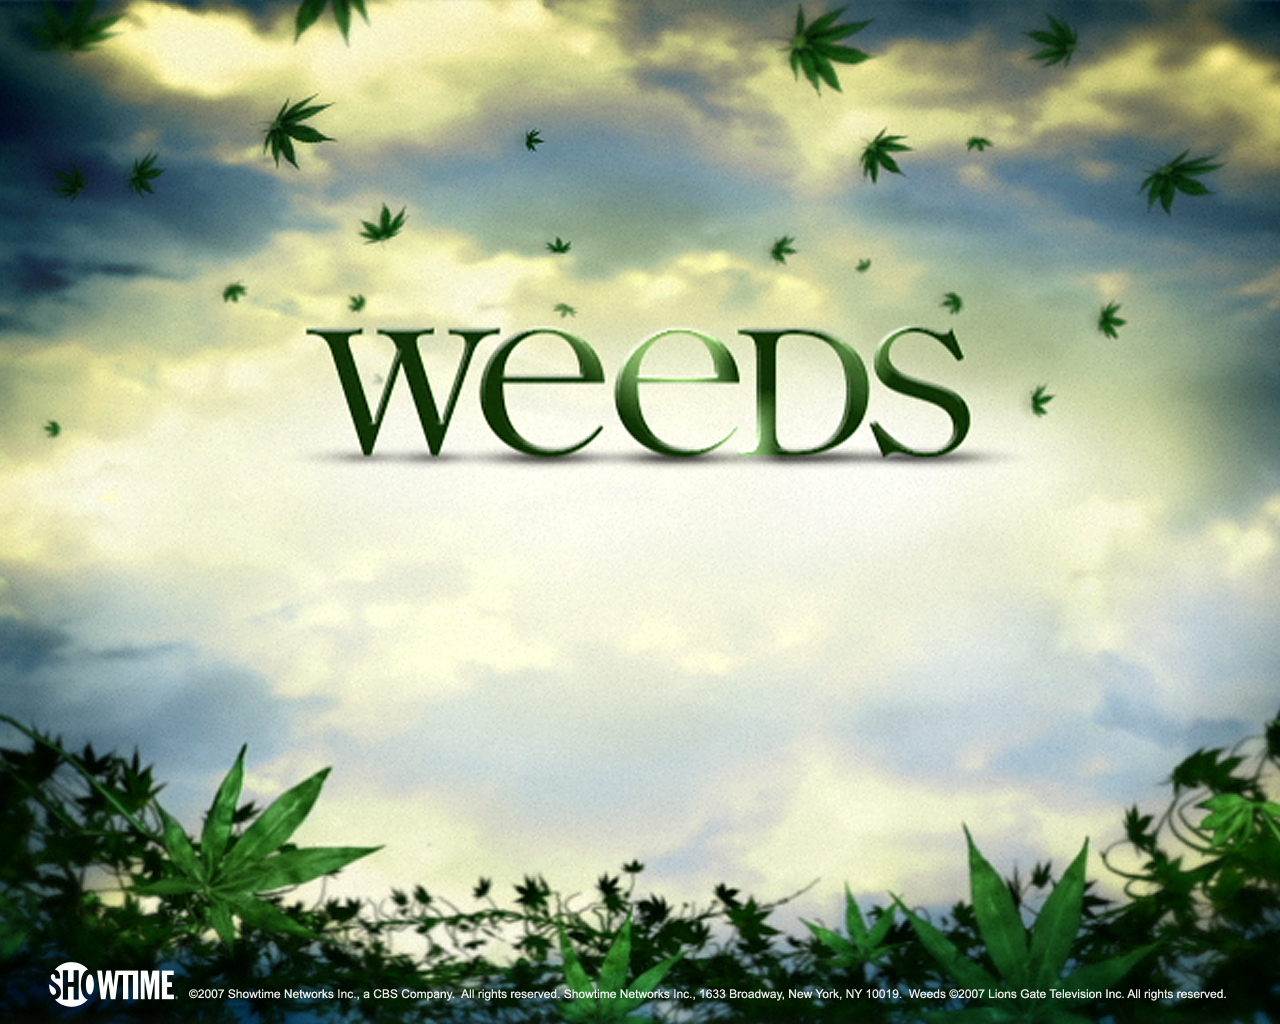 weeds wallpaper 1280x1024 weed weed hd p courses download weeddownload 1280x1024